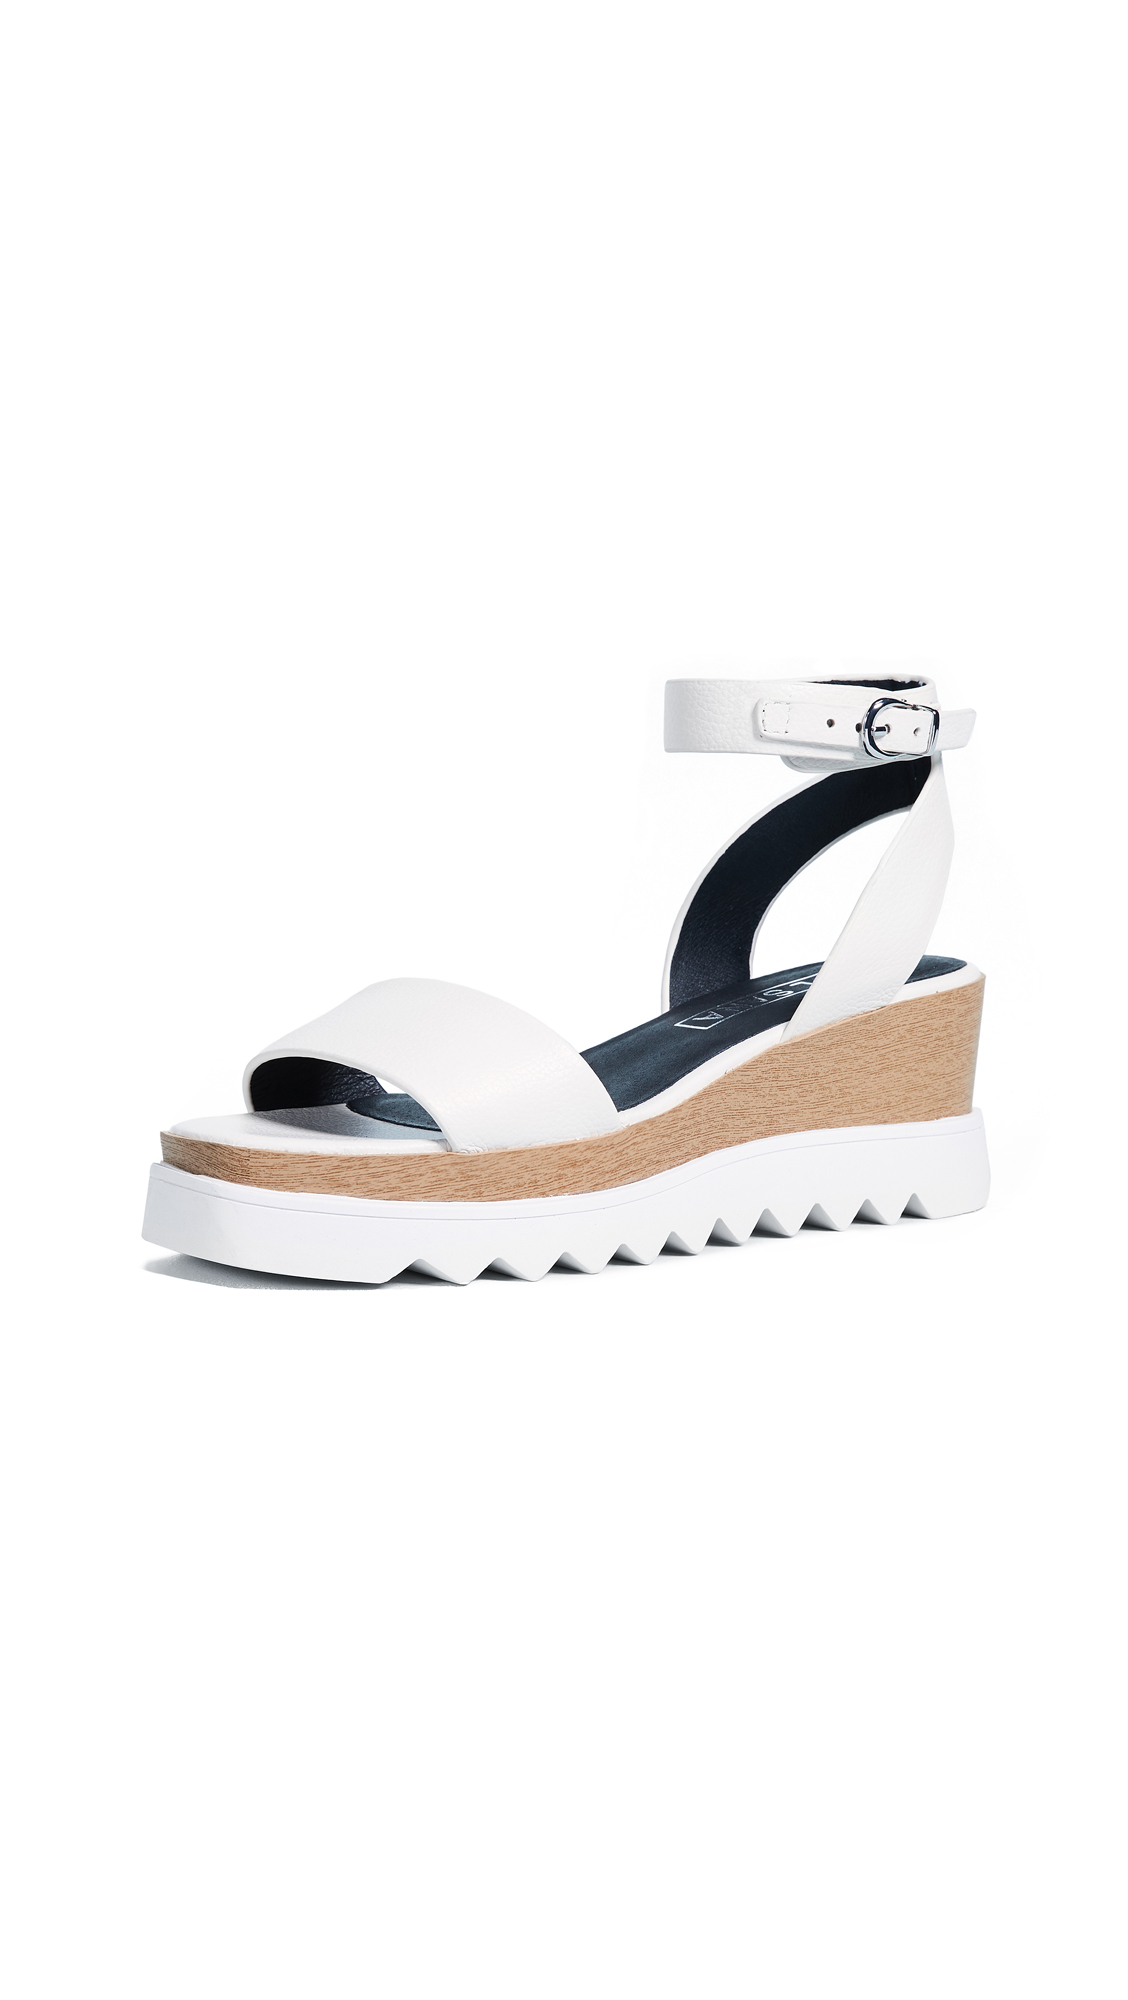 Sol Sana Tray Wedge Sandals - White